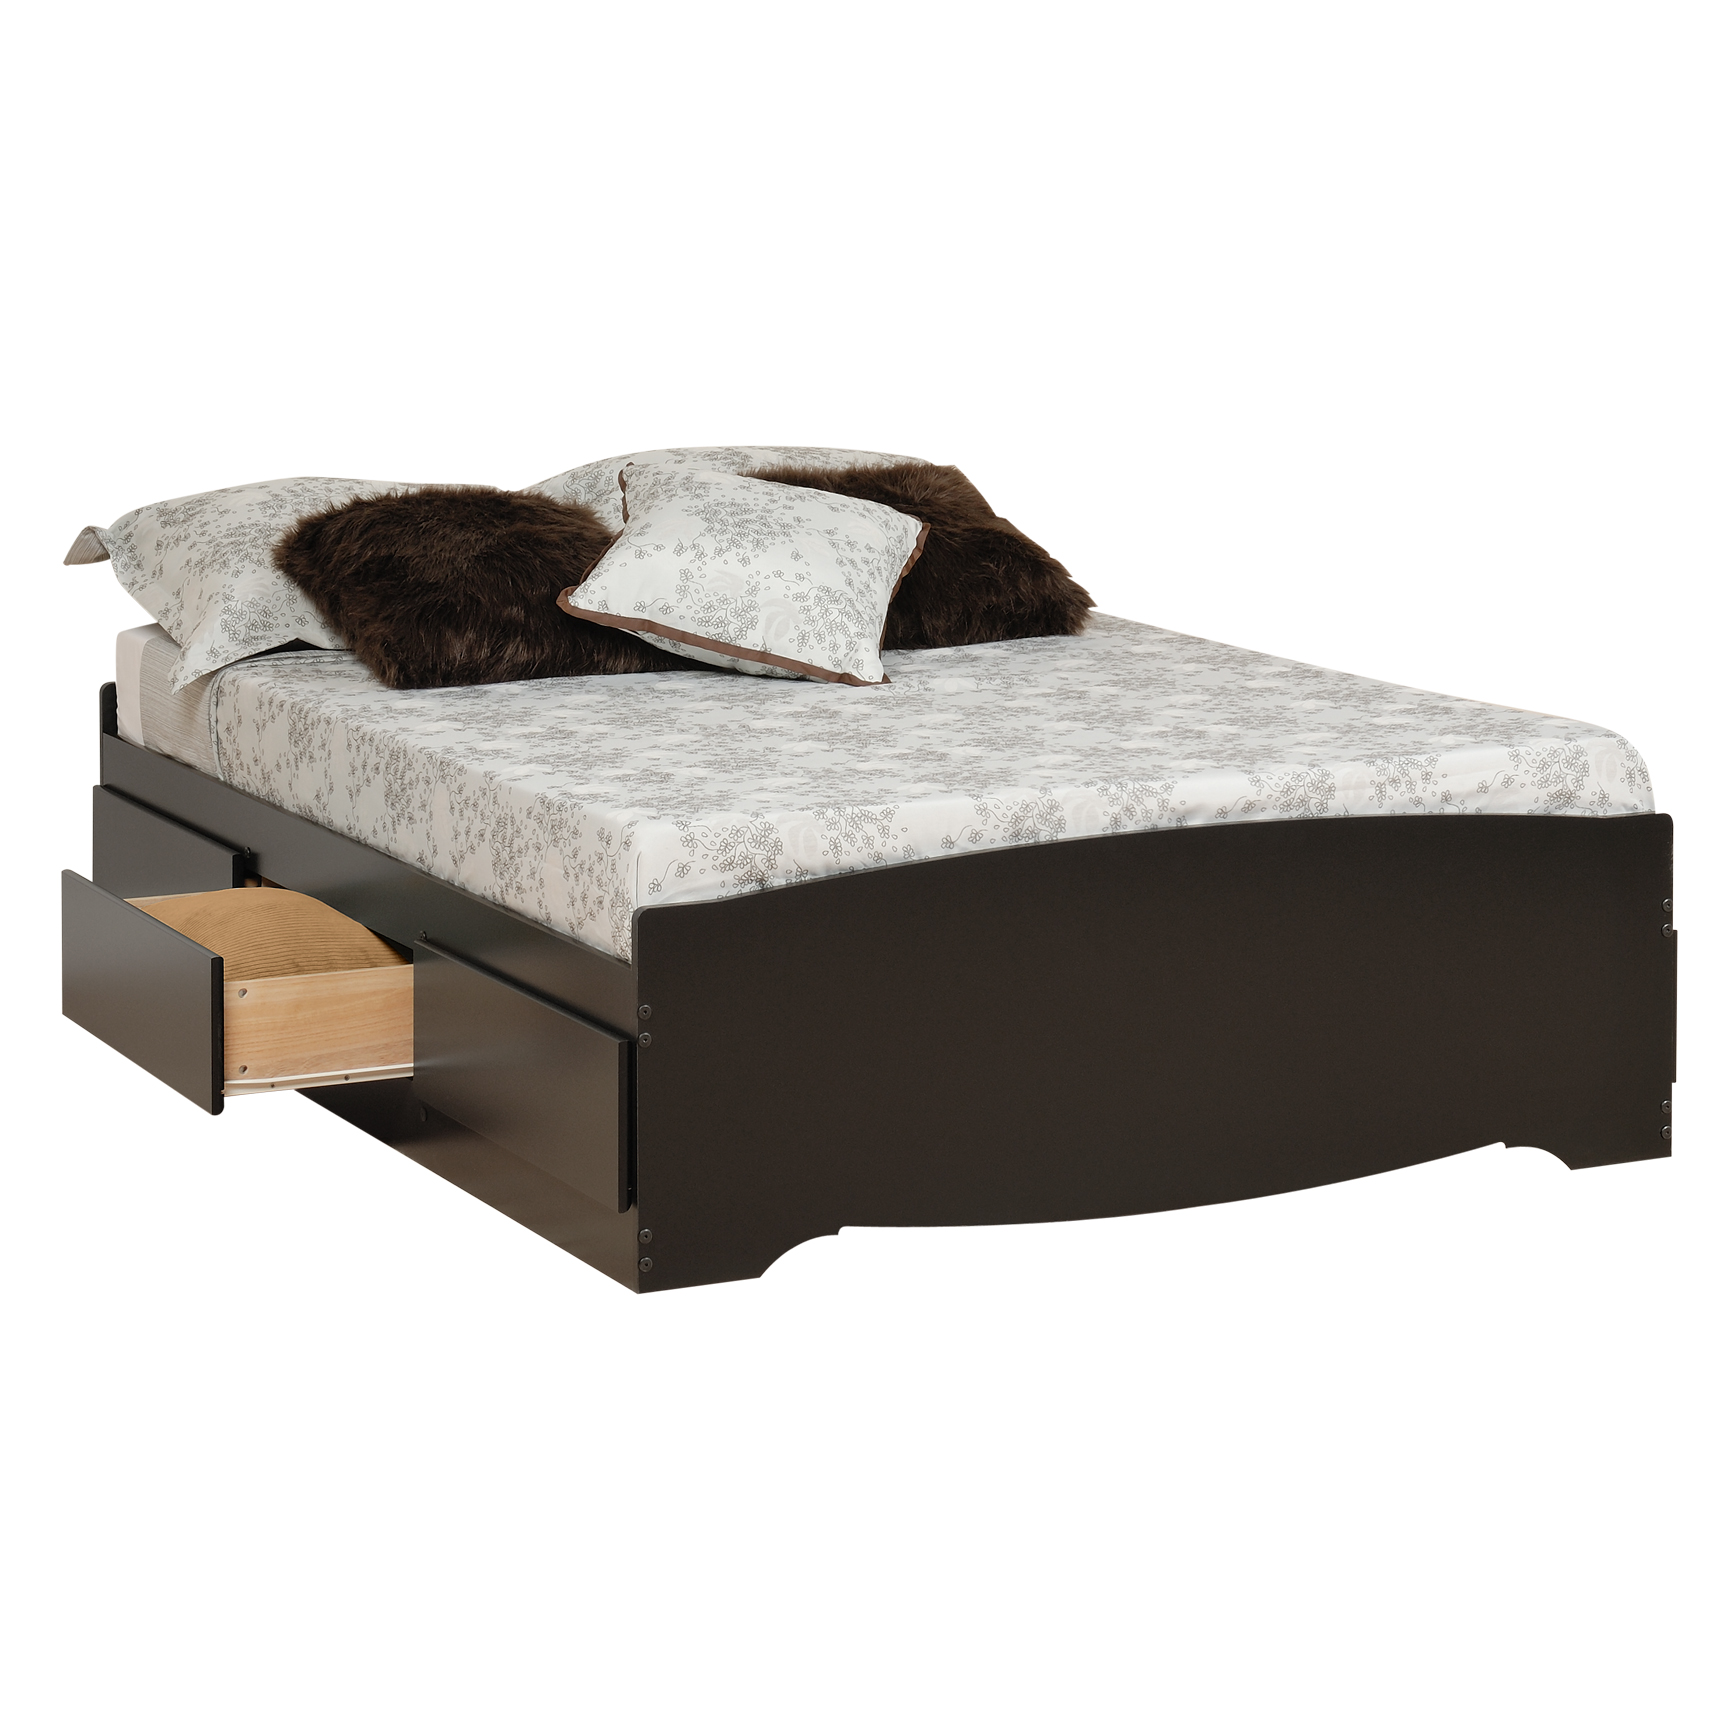 Prepac Sonoma Black Queen Platform Storage Bed 6 Drawers